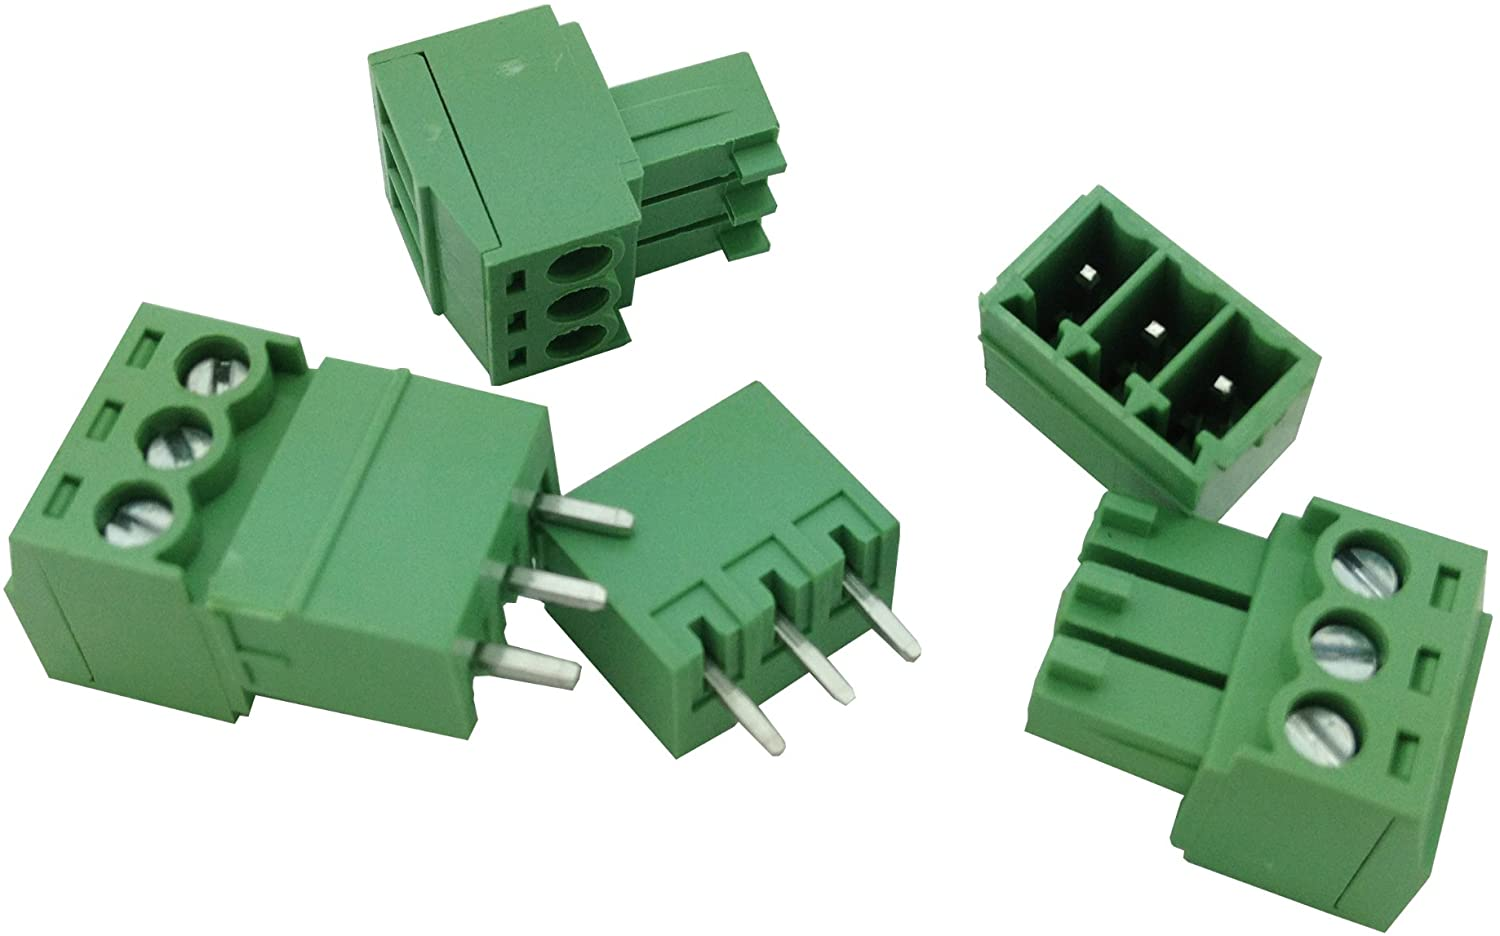 50 Pcs Pitch 3.81mm 3way/pin Screw Terminal Block Connector w/Straight-pin Green Color Pluggable Type Skywalking